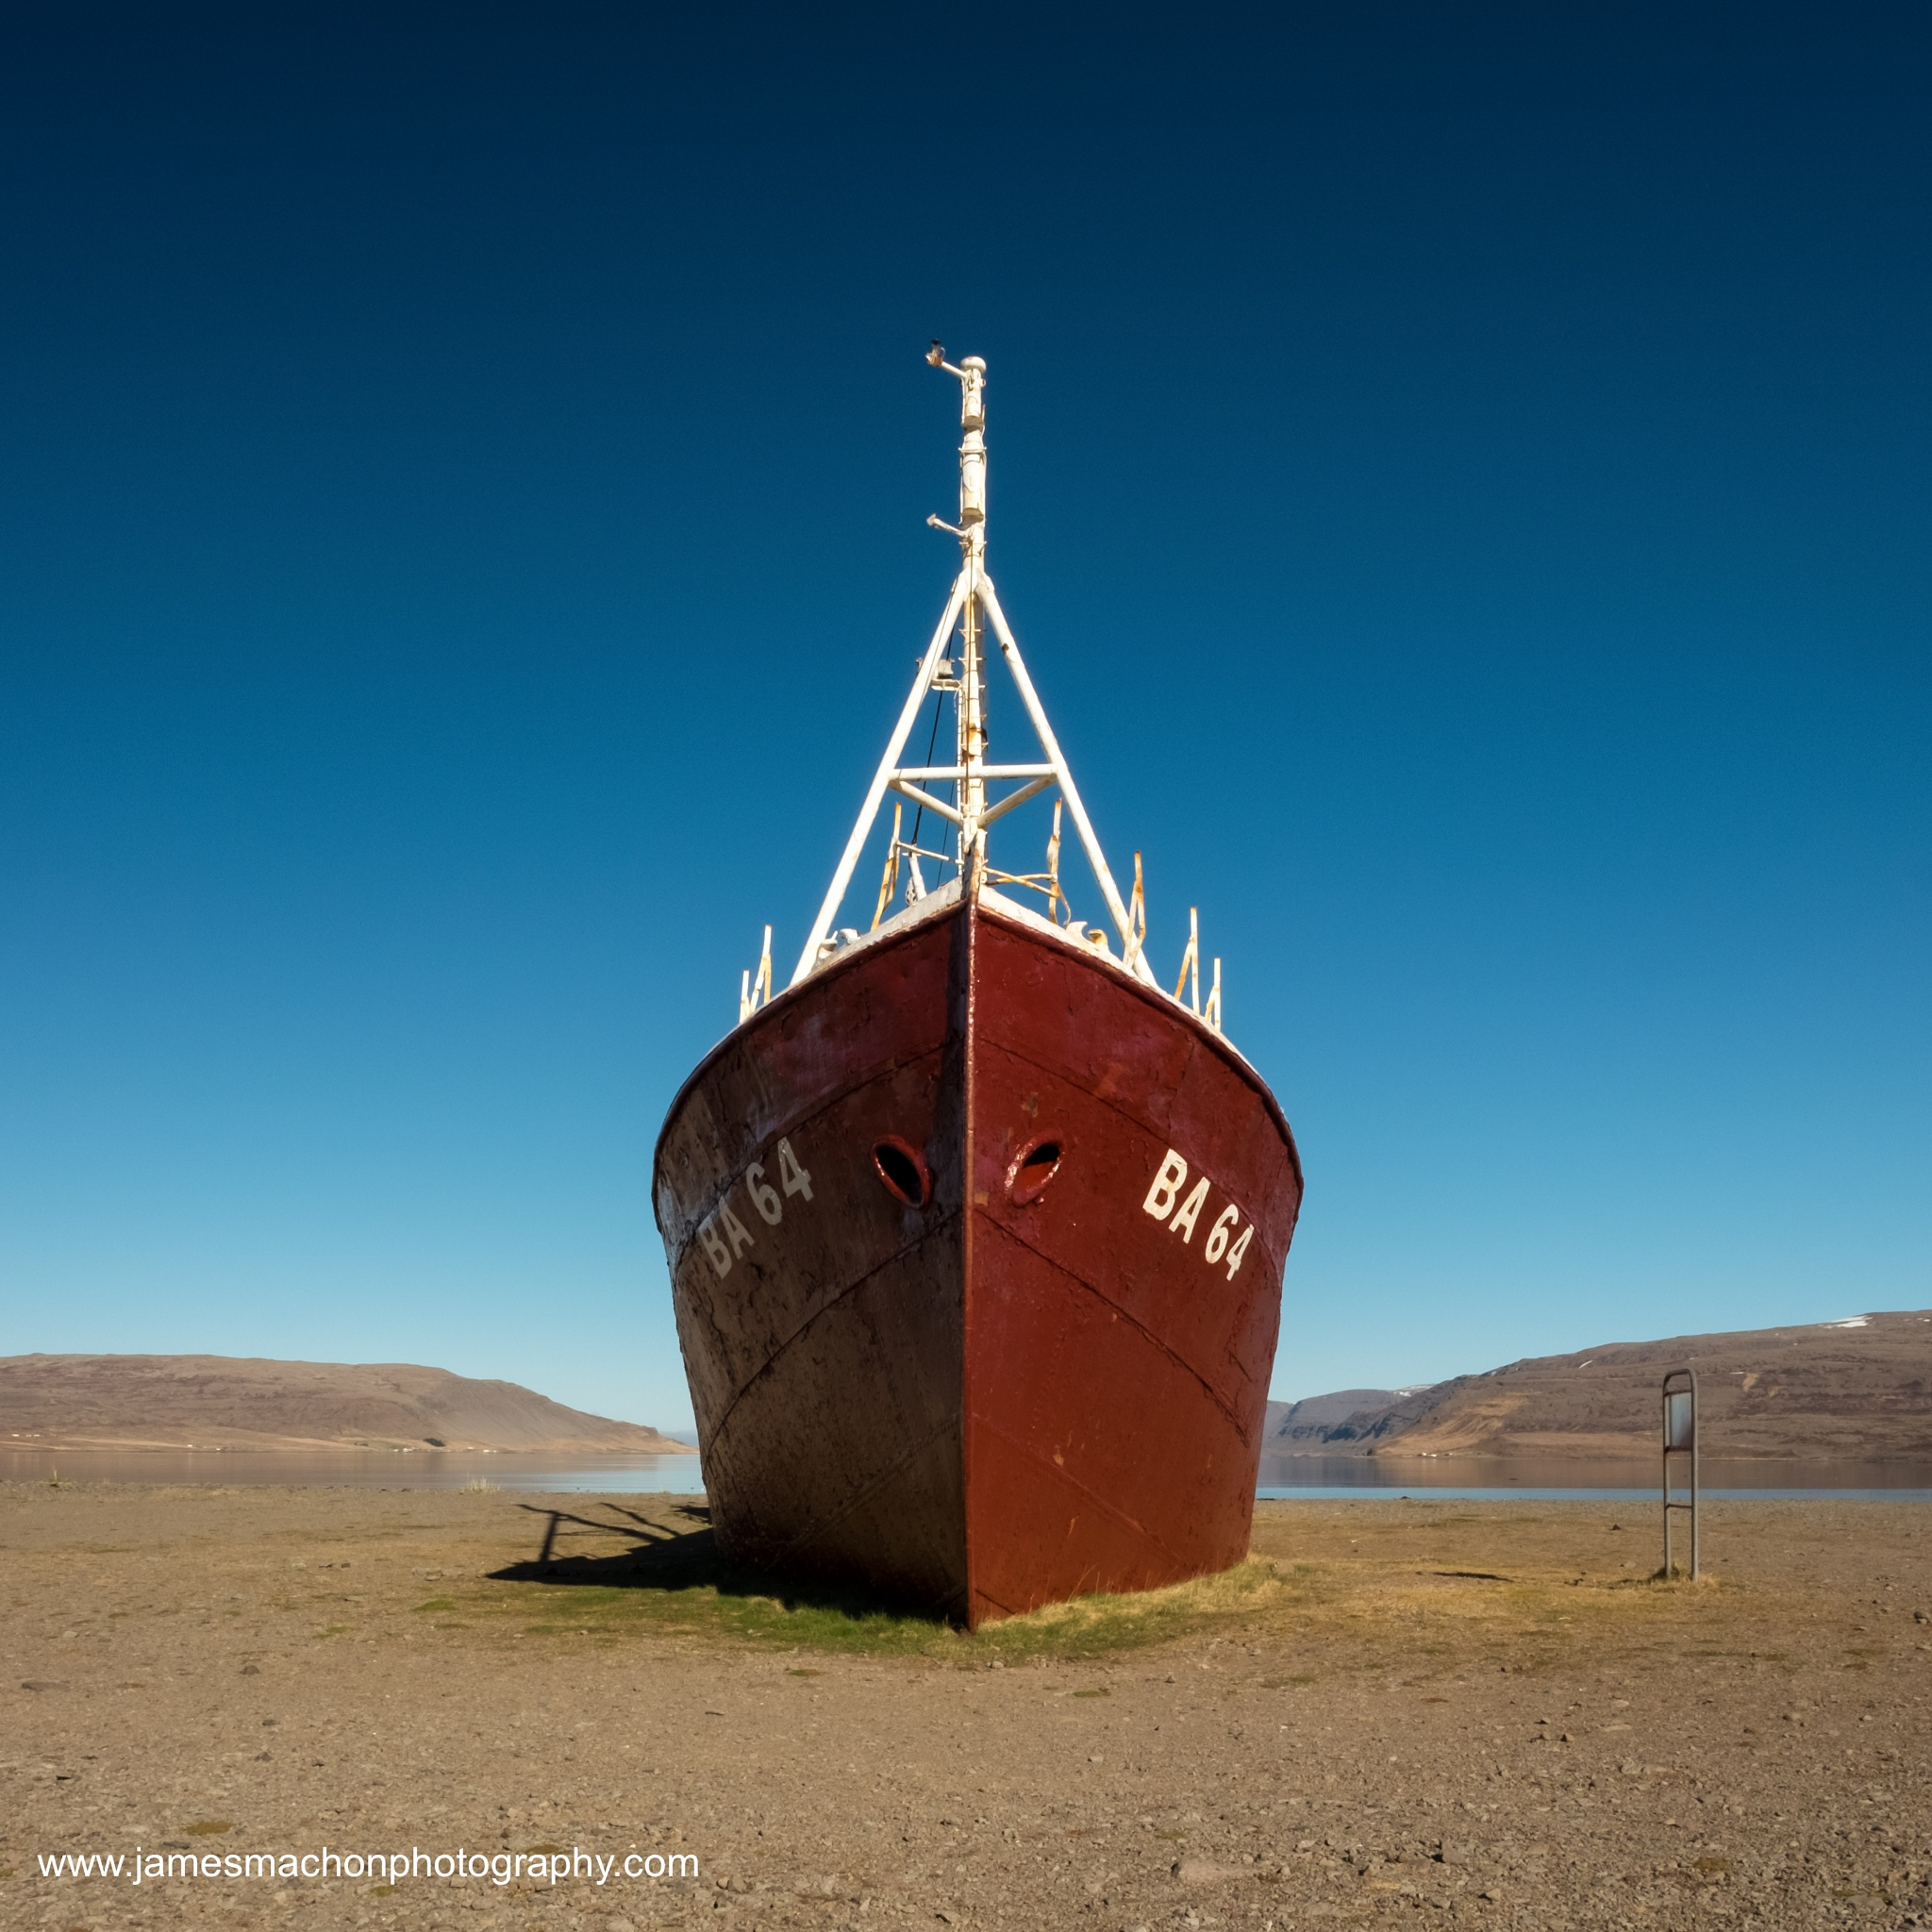 Marooned by James Machon Photography